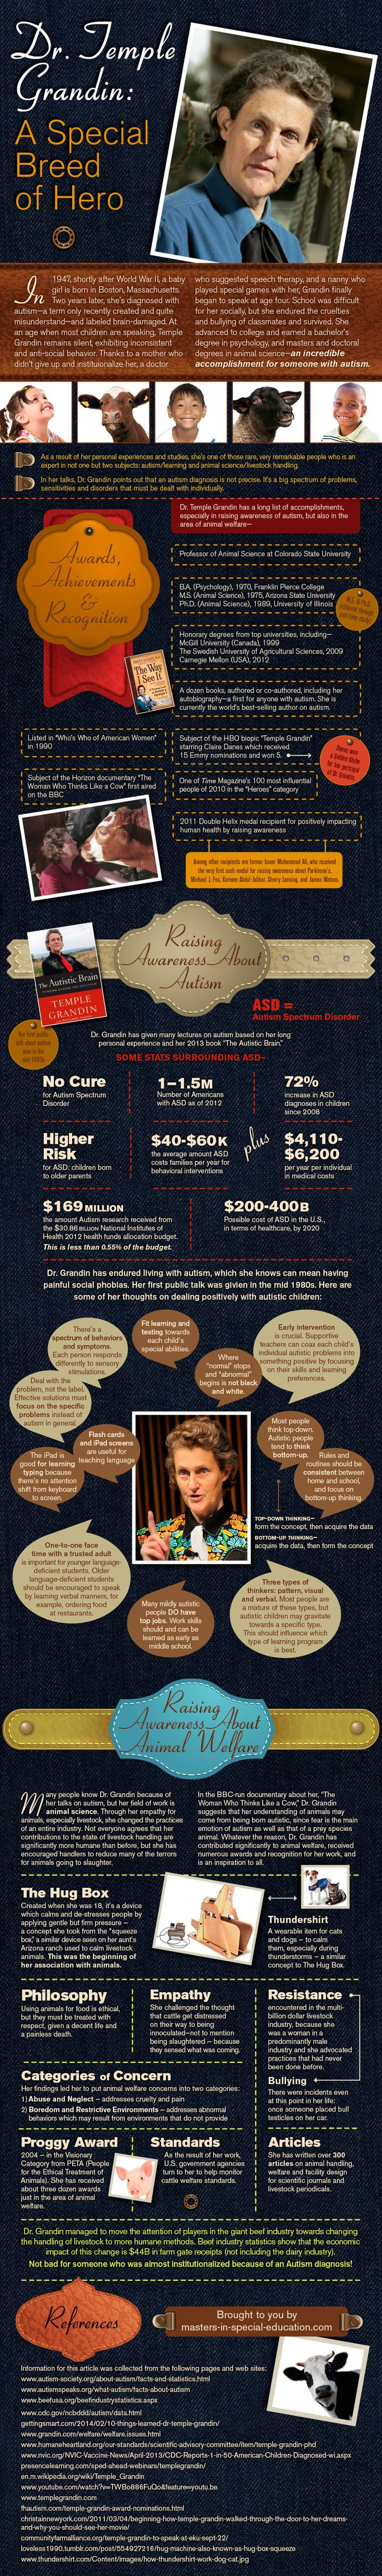 Dr. Temple Grandin: A Special Breed of Hero – Masters in Special Education Degree Program Guide